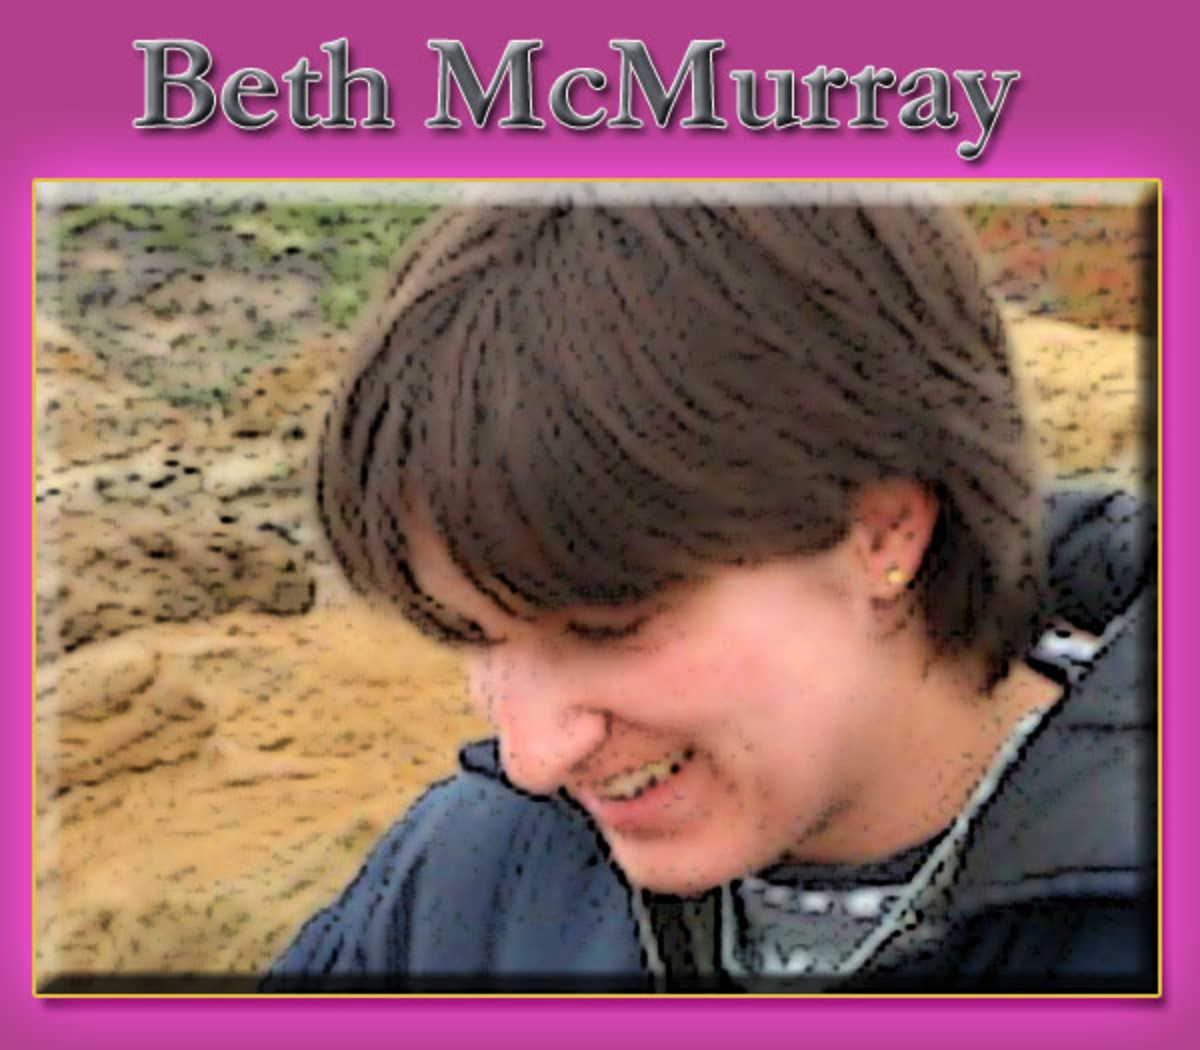 Children's Book author Beth McMurray